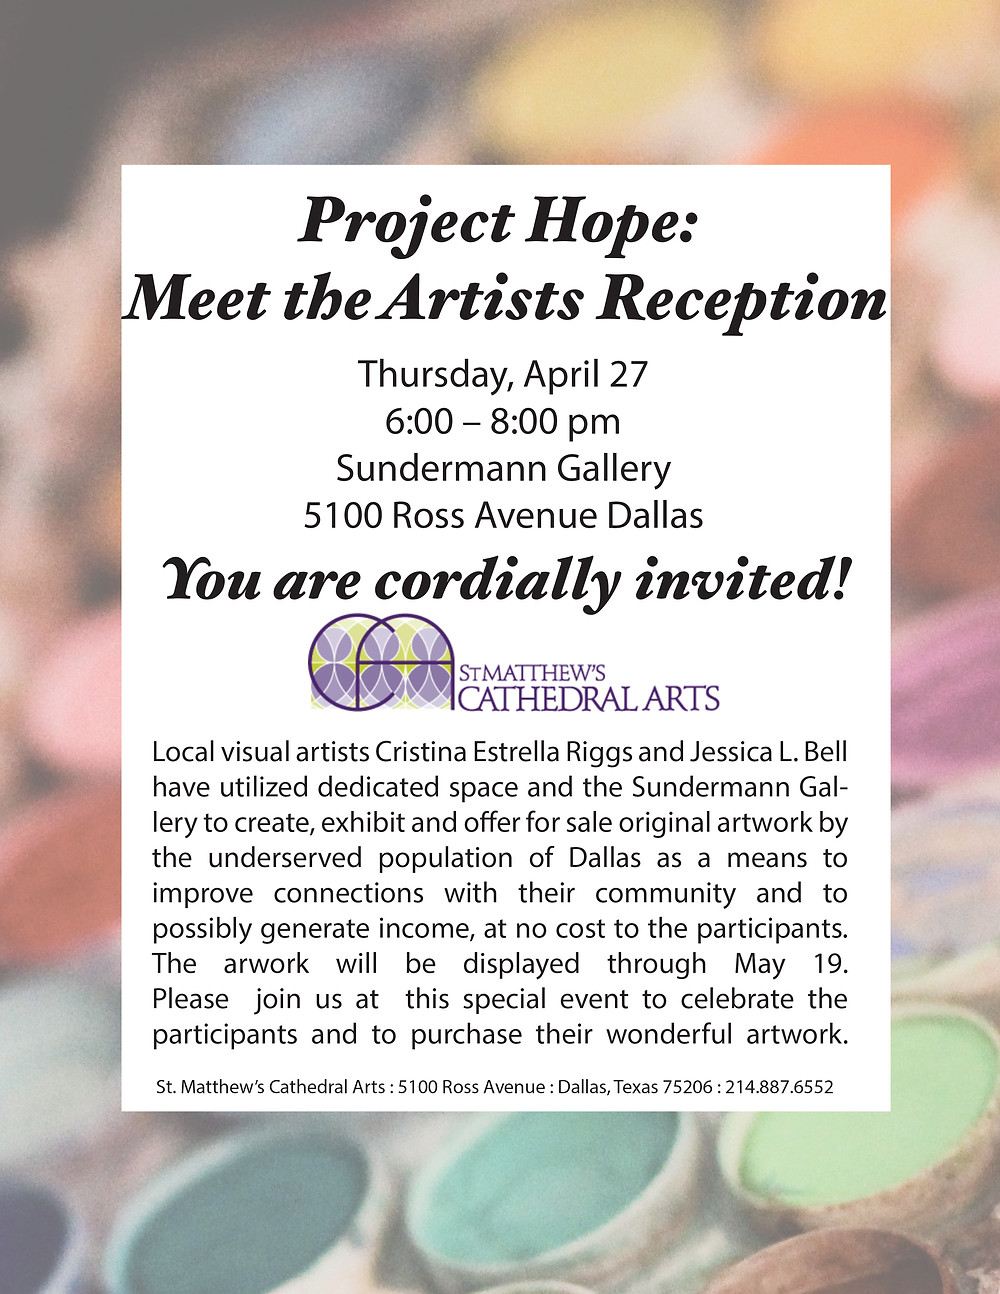 Project Hope: Meet the Artists Reception